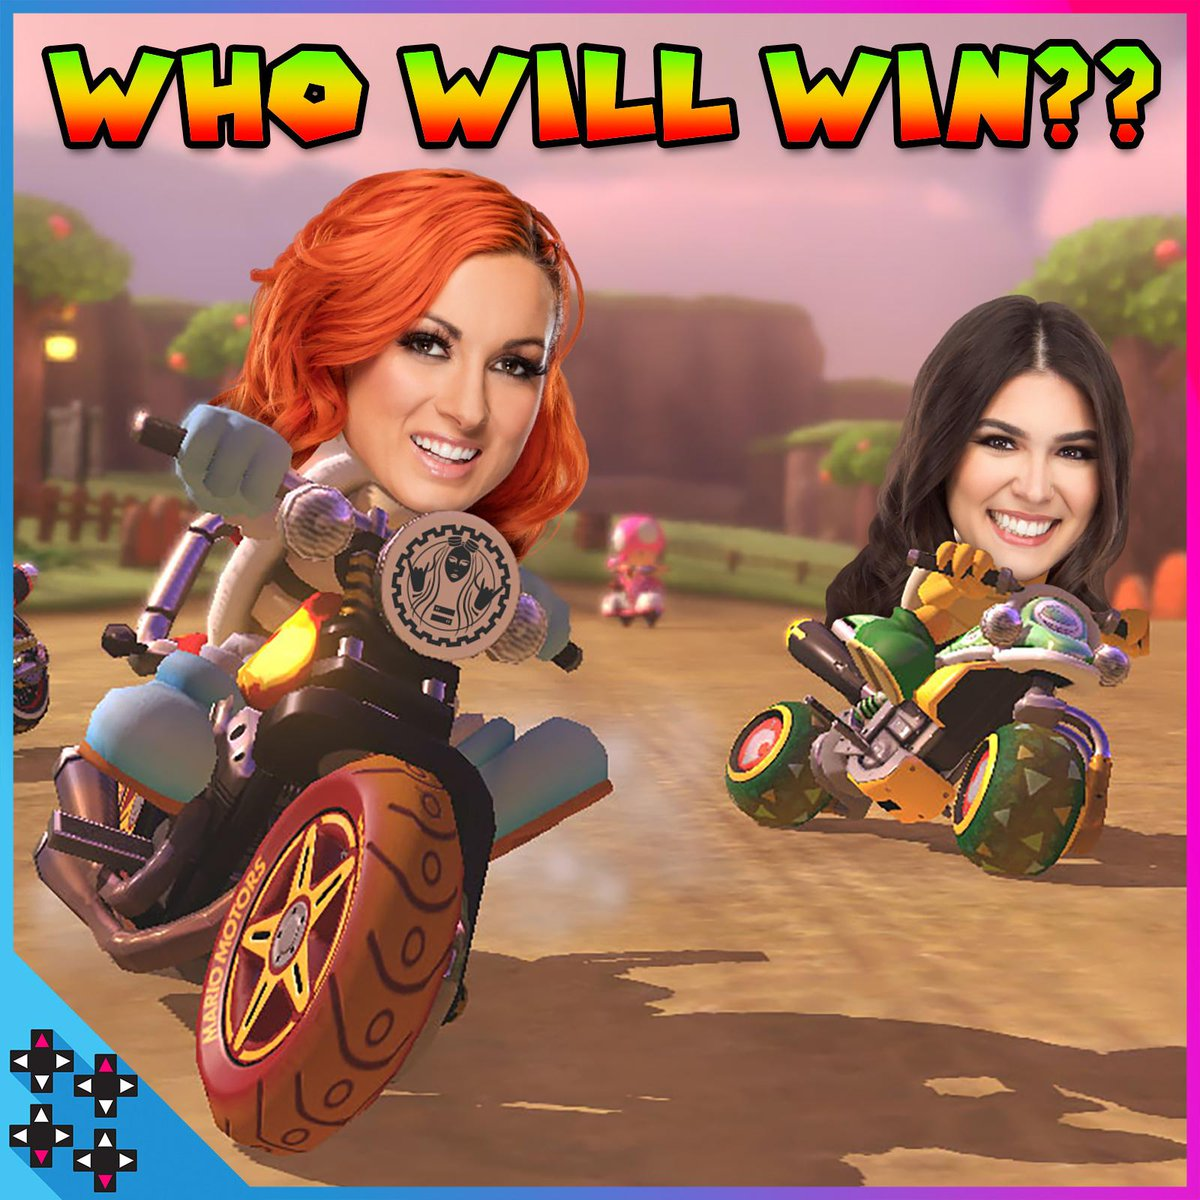 No road is safe when #TheMan, @BeckyLynchWWE comes around! #UUDD2MIL #UUDD  https://www.youtube.com/watch?v=D_eZk7OoZog&feature=youtu.be&sf215688638=1…